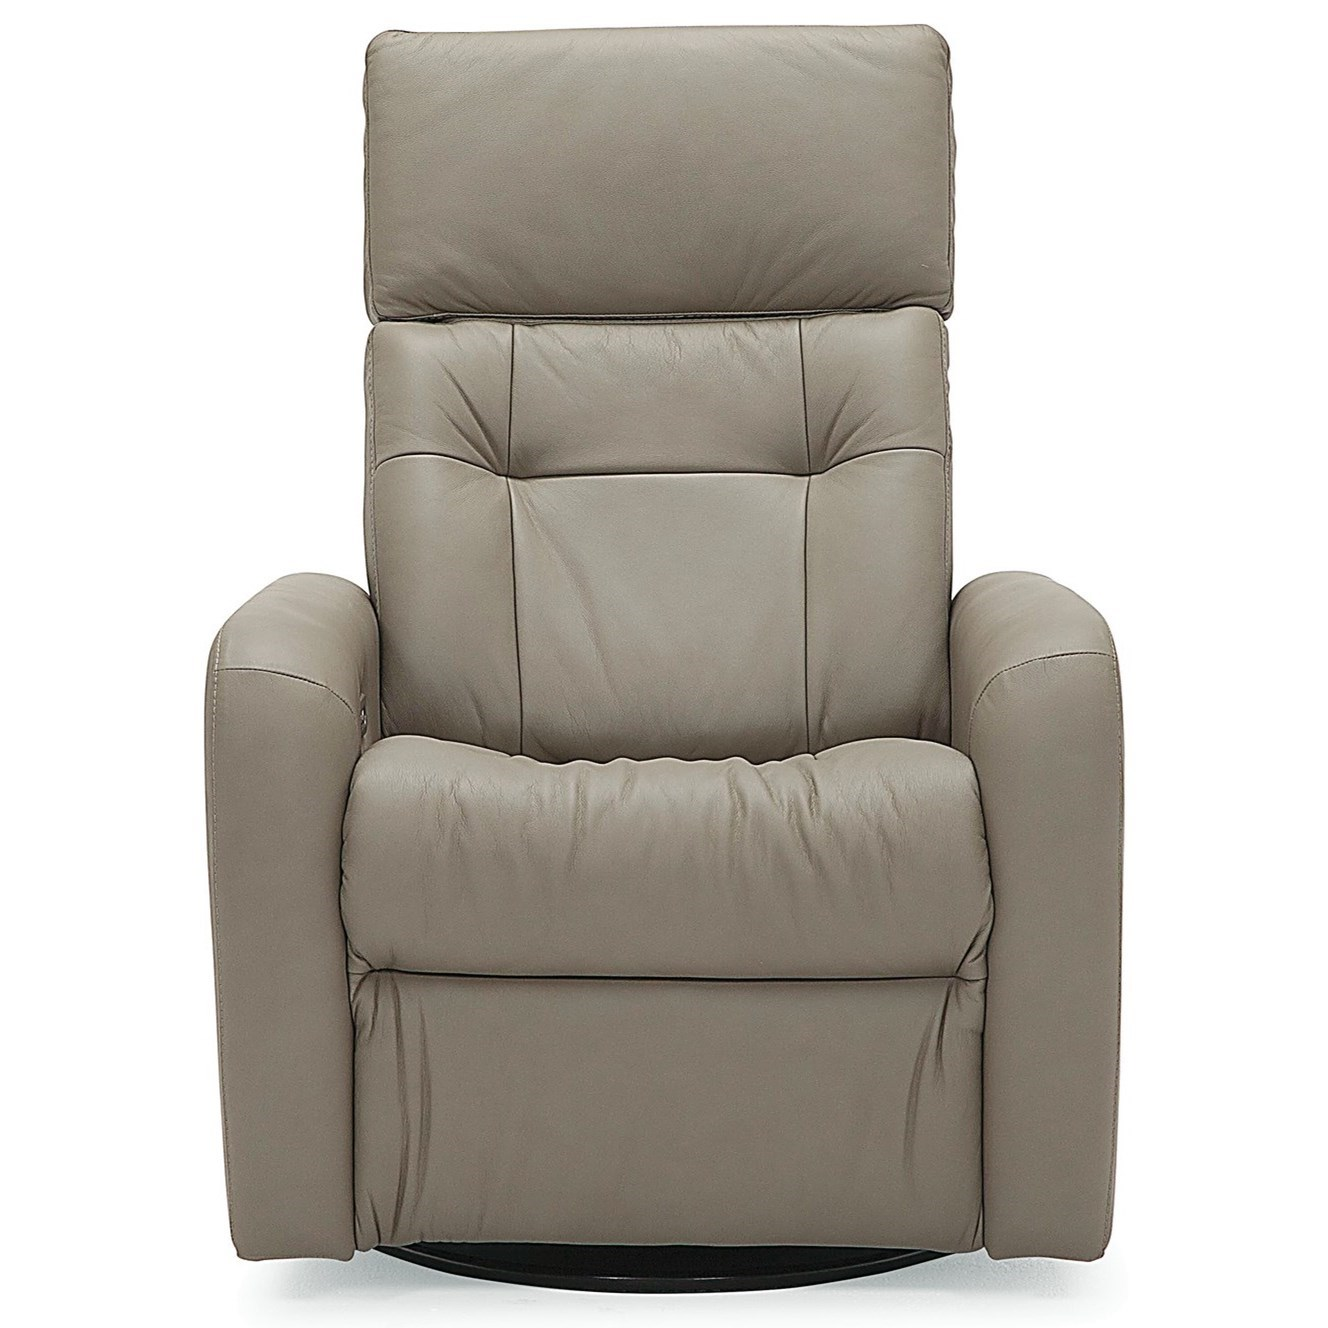 Sorrento II Swivel Glider Power Recliner by Palliser at Michael Alan Furniture & Design